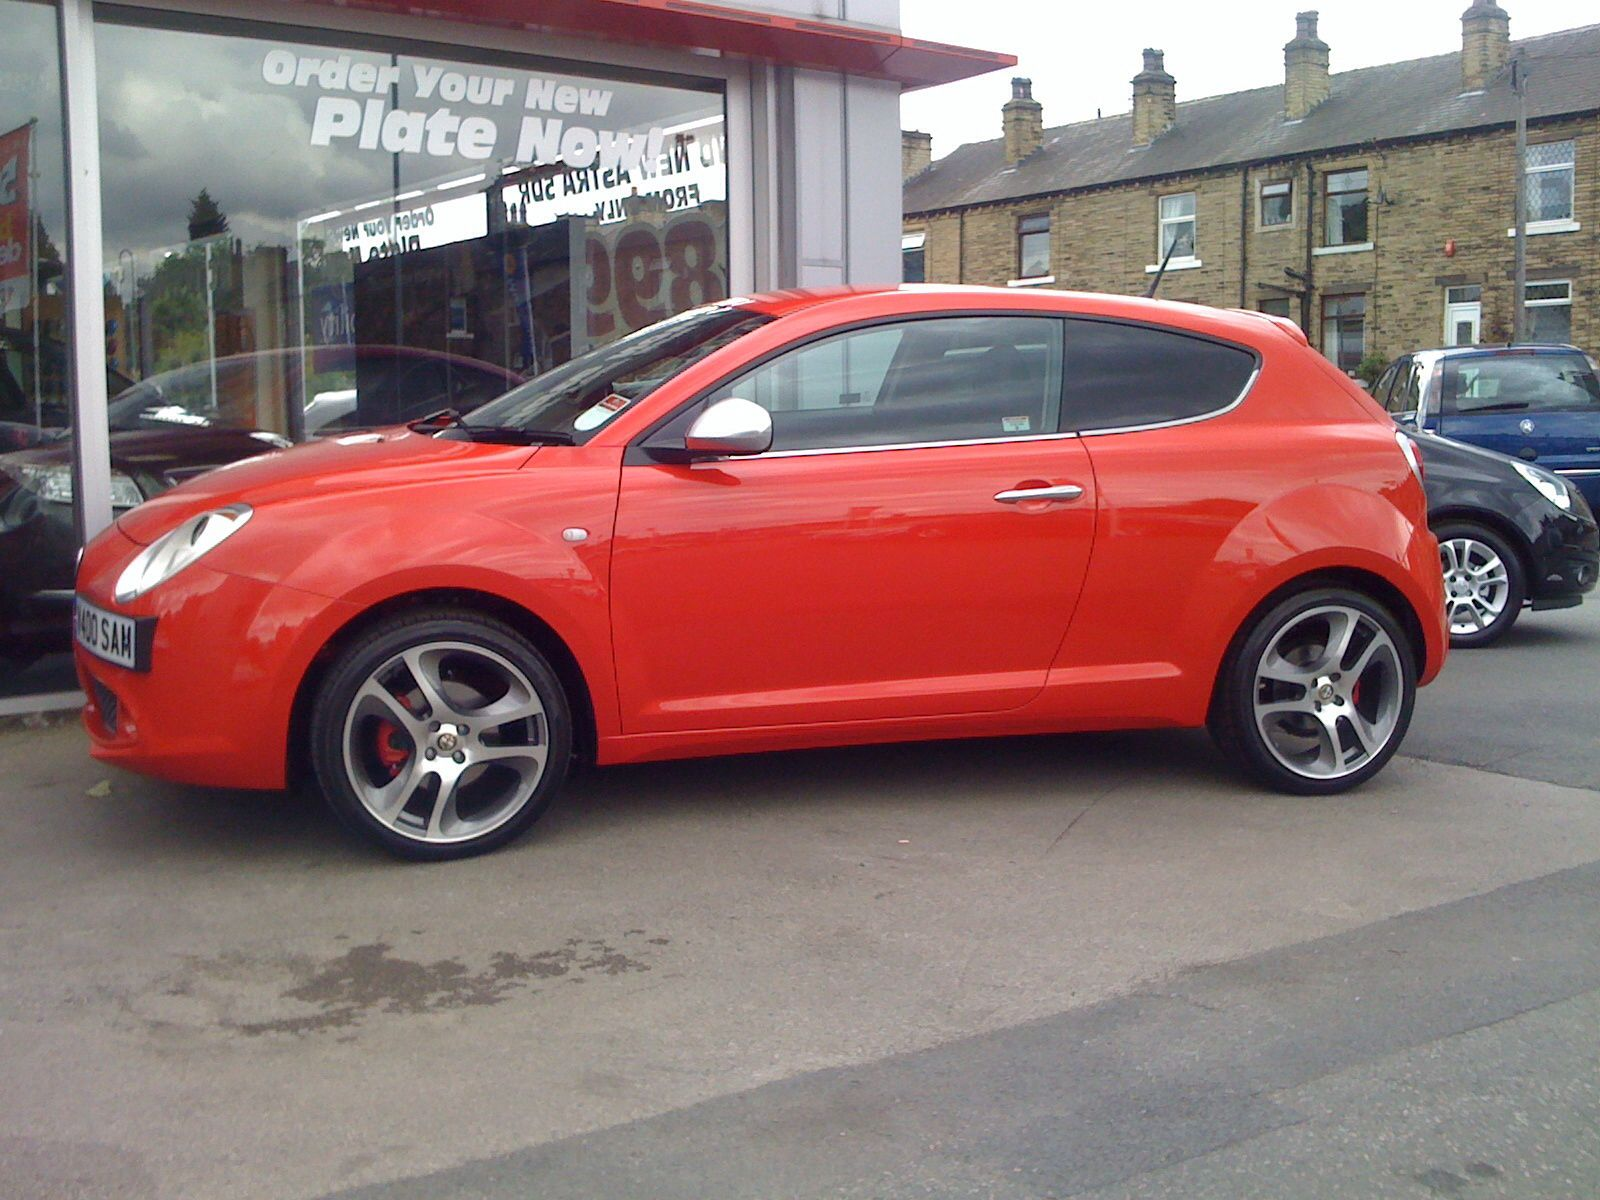 Hatchback window tints Huddersfield contact mark@automotivesolutions.co.uk for your quote